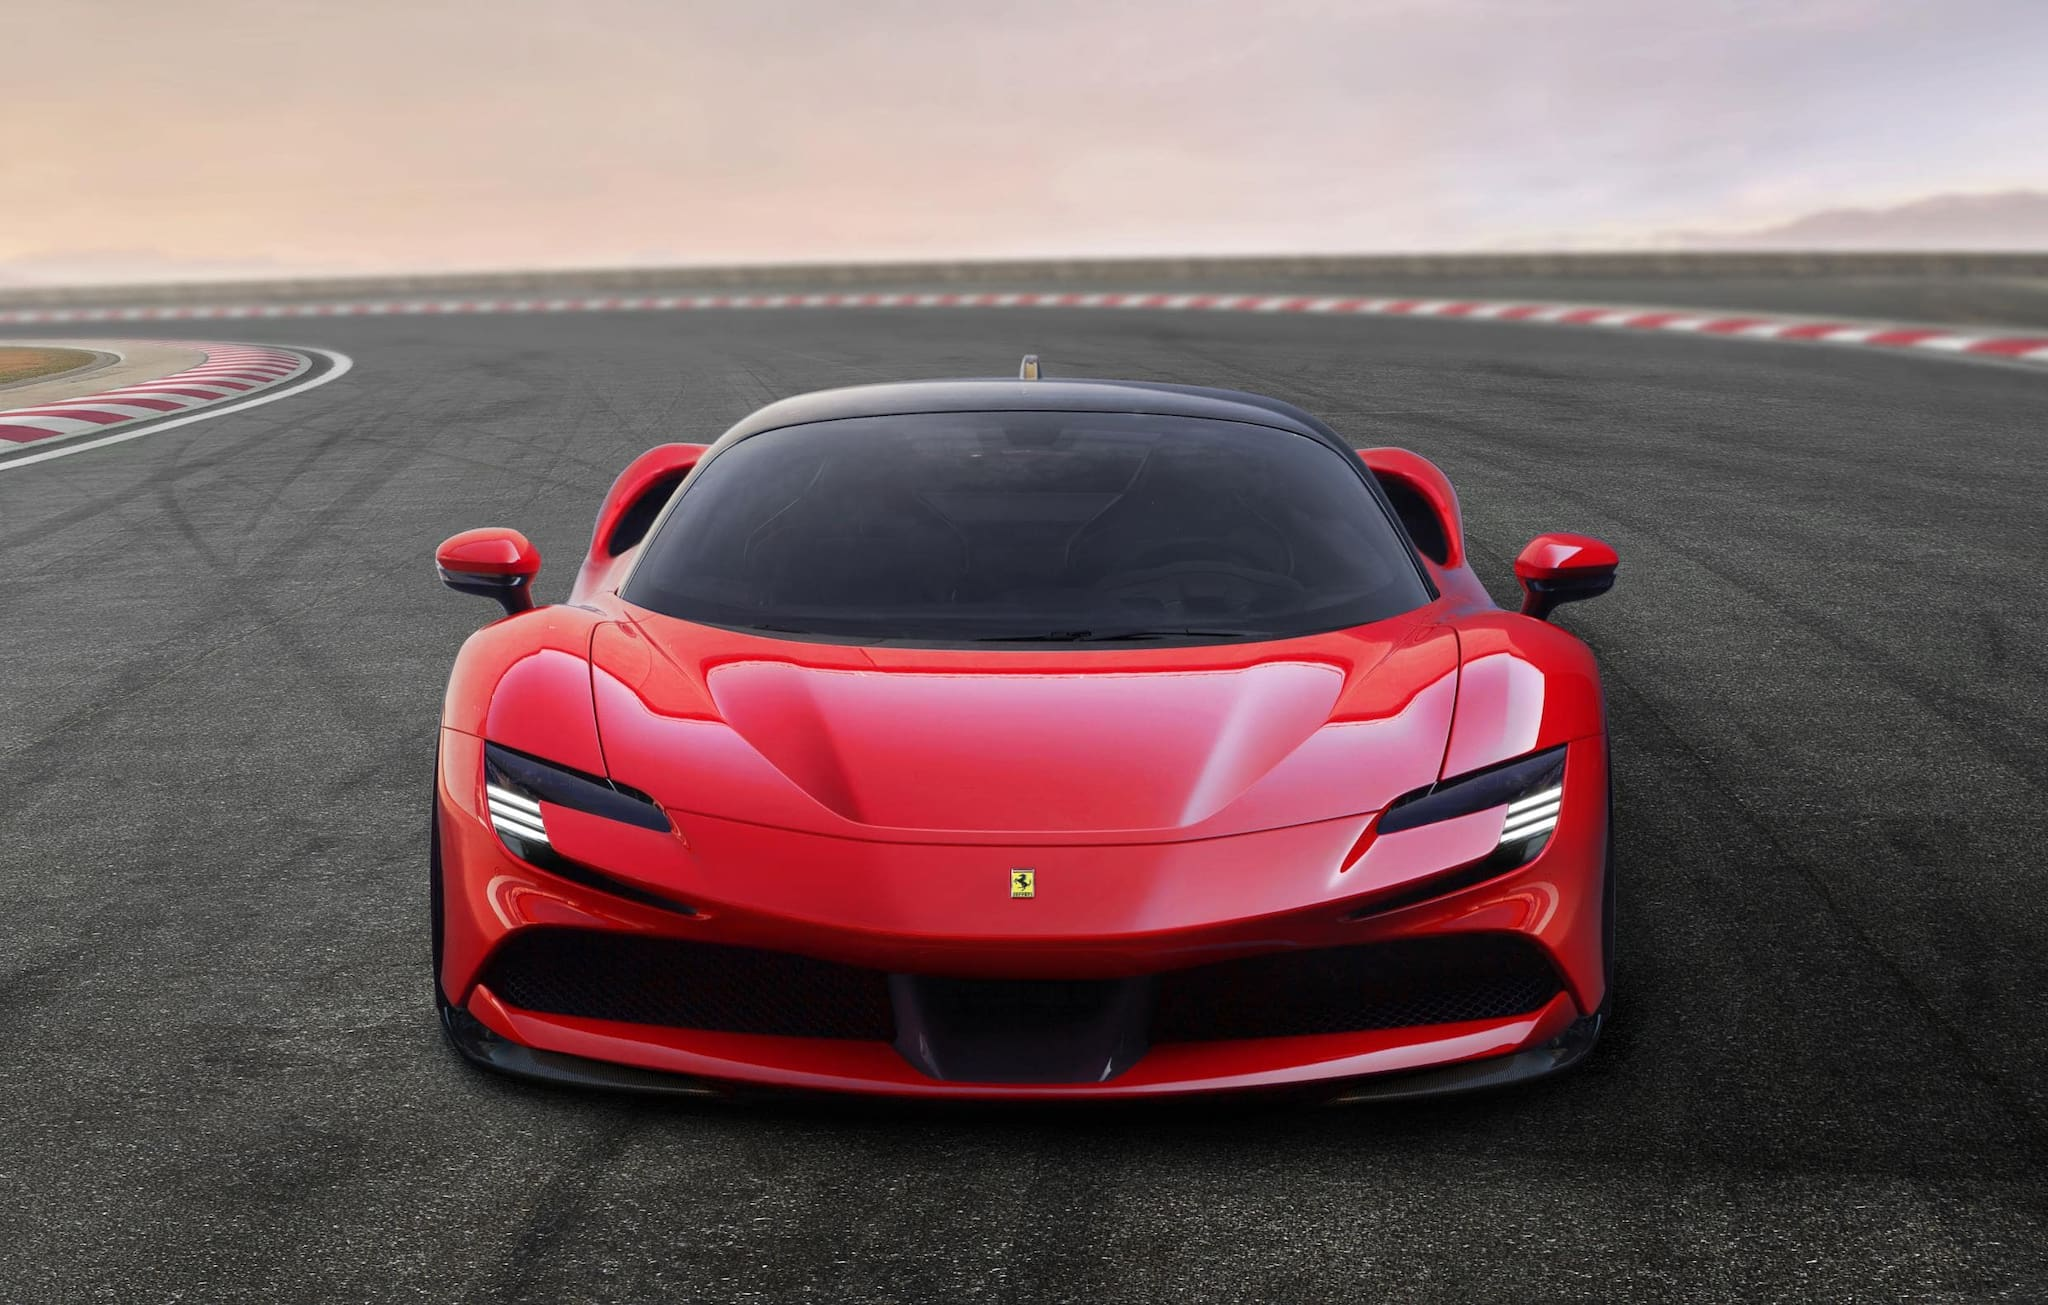 Ferrari SF90 Stradale is Marque's First Series Production Plug-In Hybrid